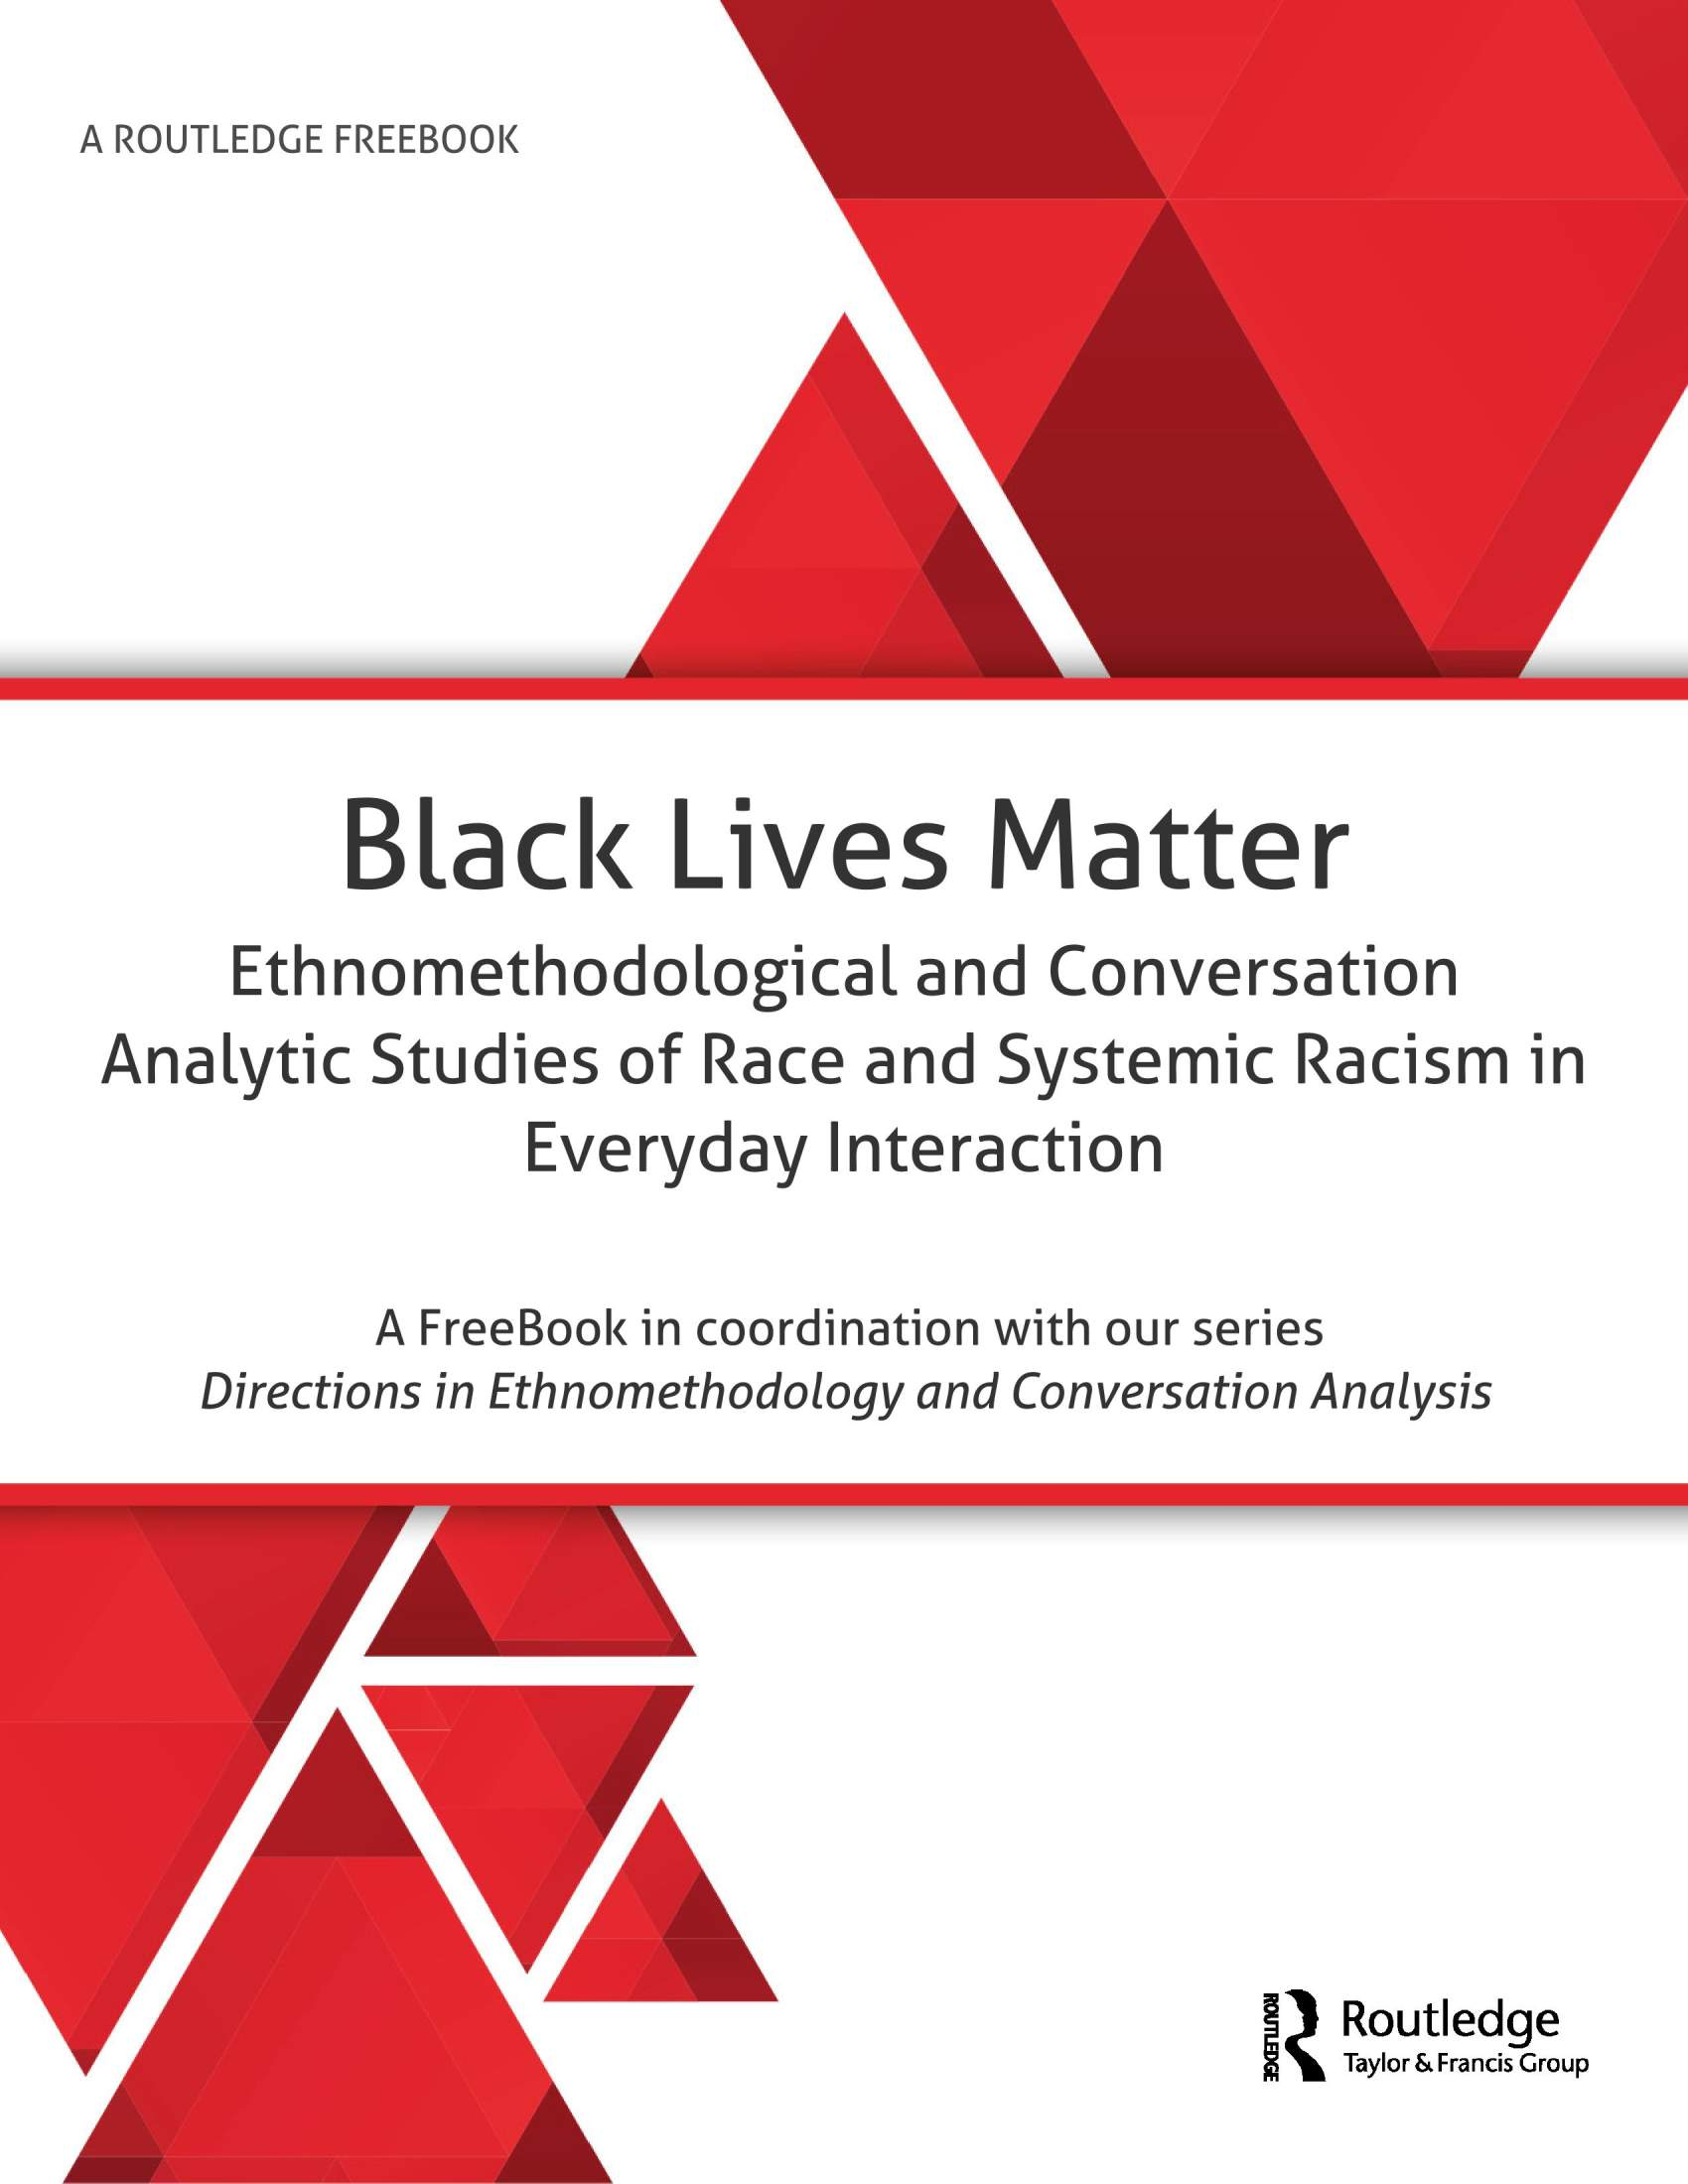 Black Lives Matter: Ethnomethodological and Conversation Analytic Studies of Race and Systemic Racism in Everyday Interaction